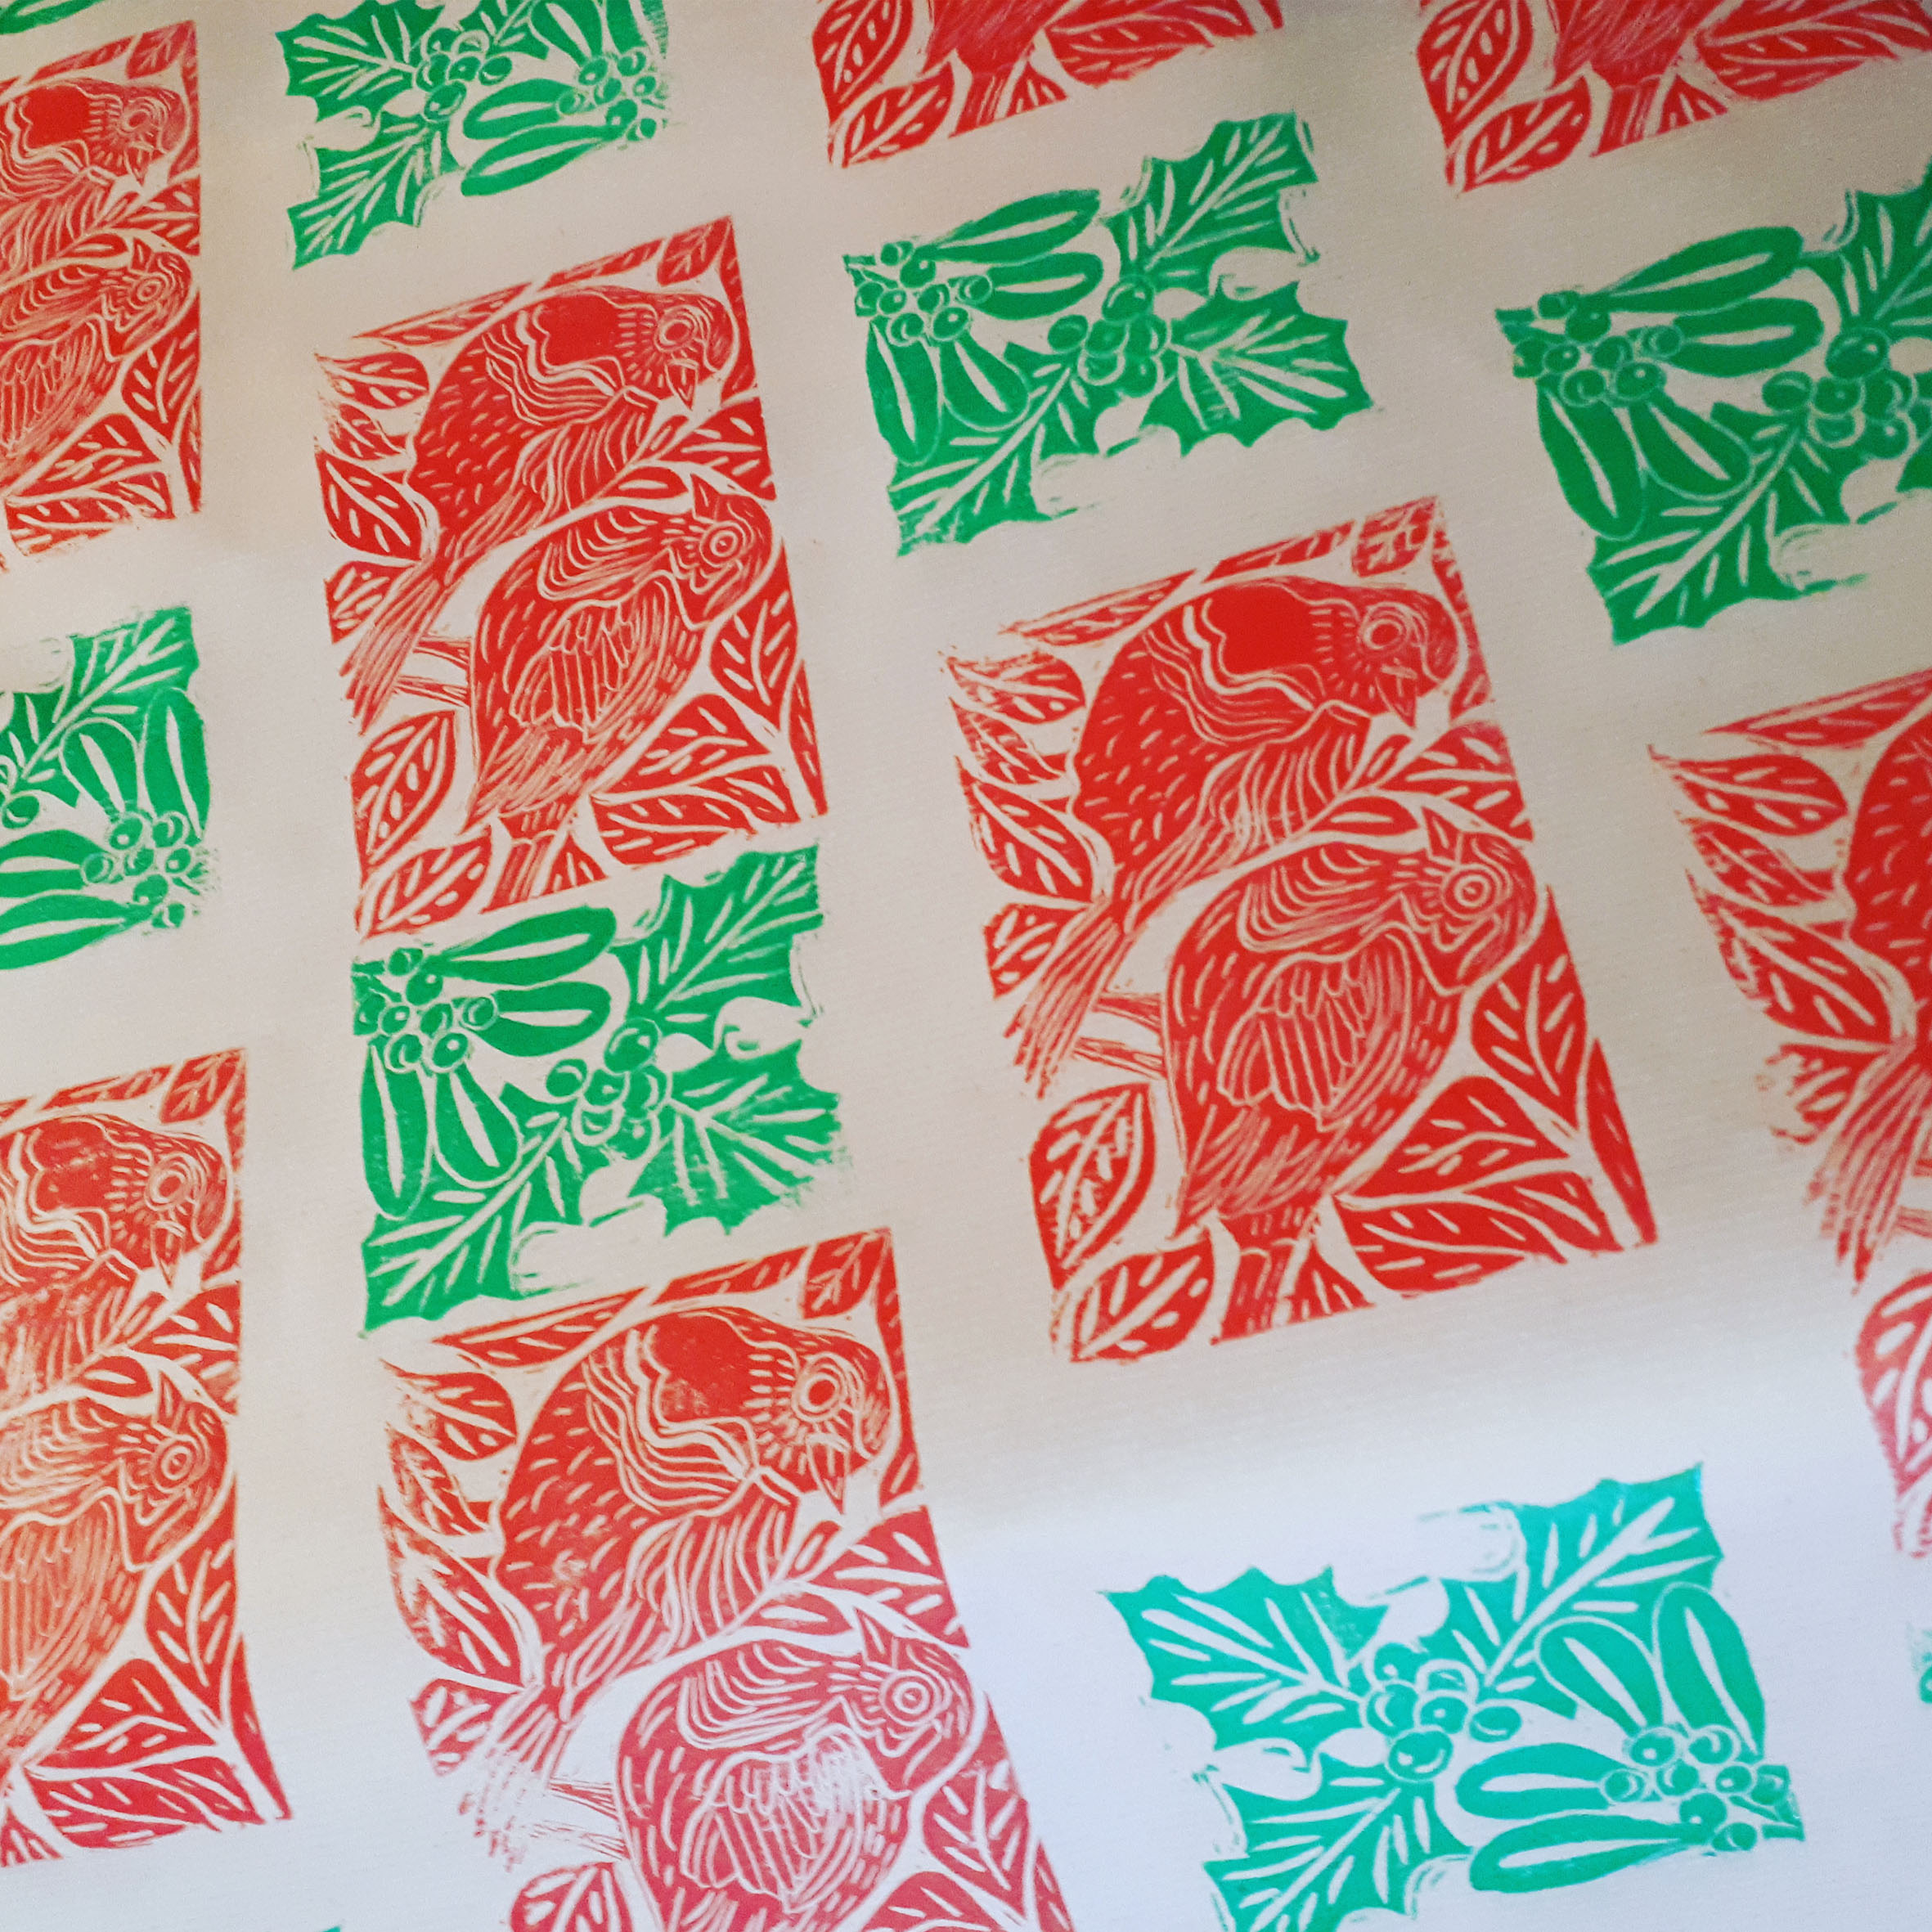 The Paper Moon: Festive Lino Print Workshop